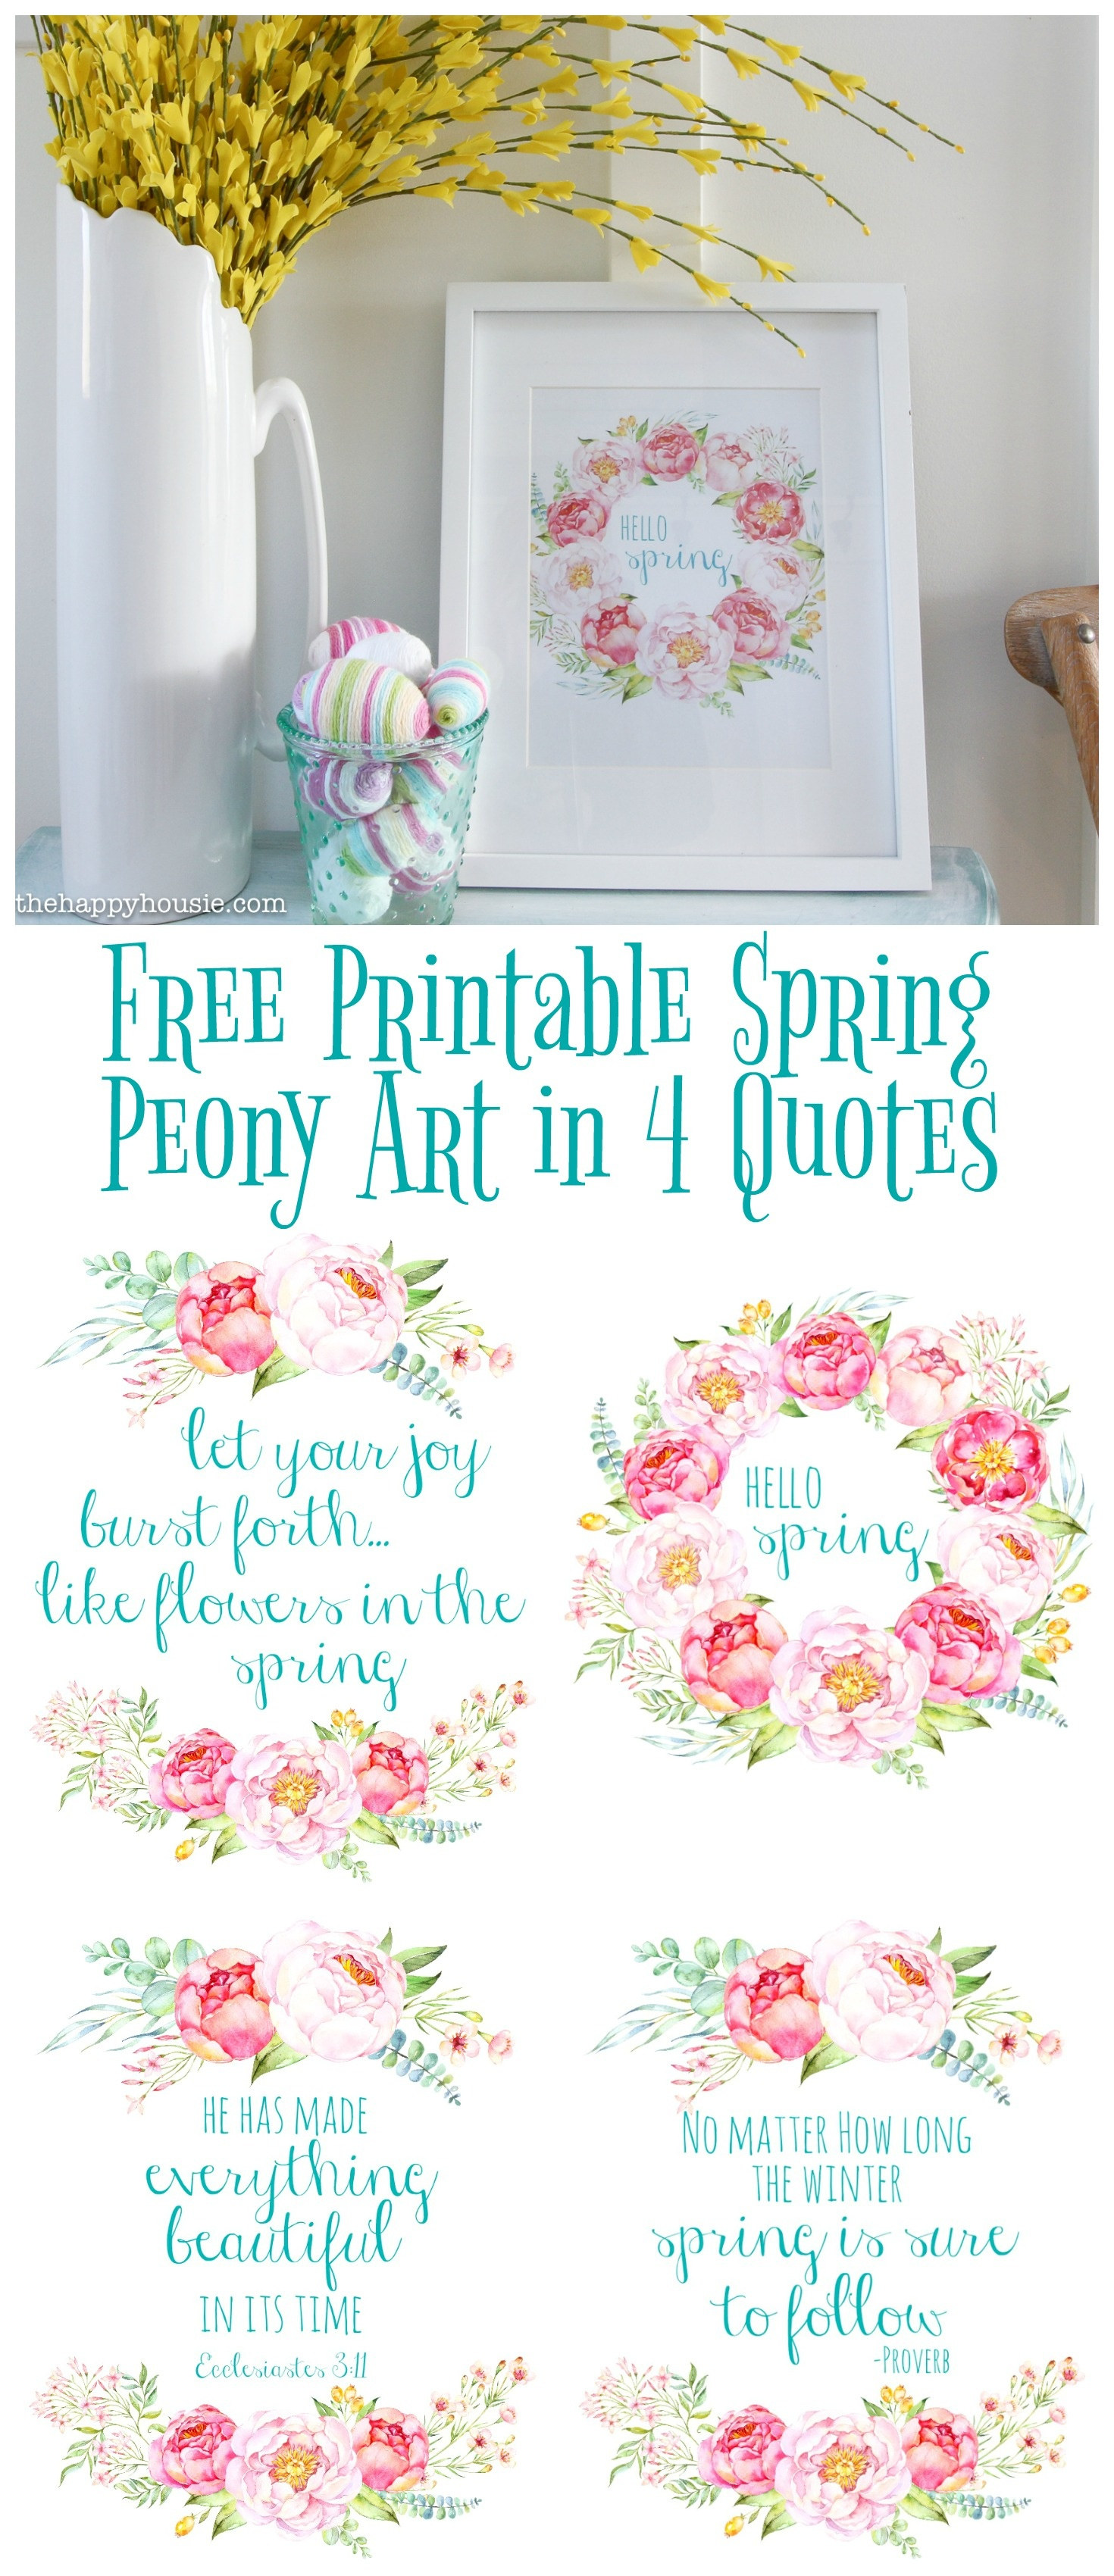 Free Printable Spring Peony Art & Easter Art | The Happy Housie - Free Printable Spring Decorations